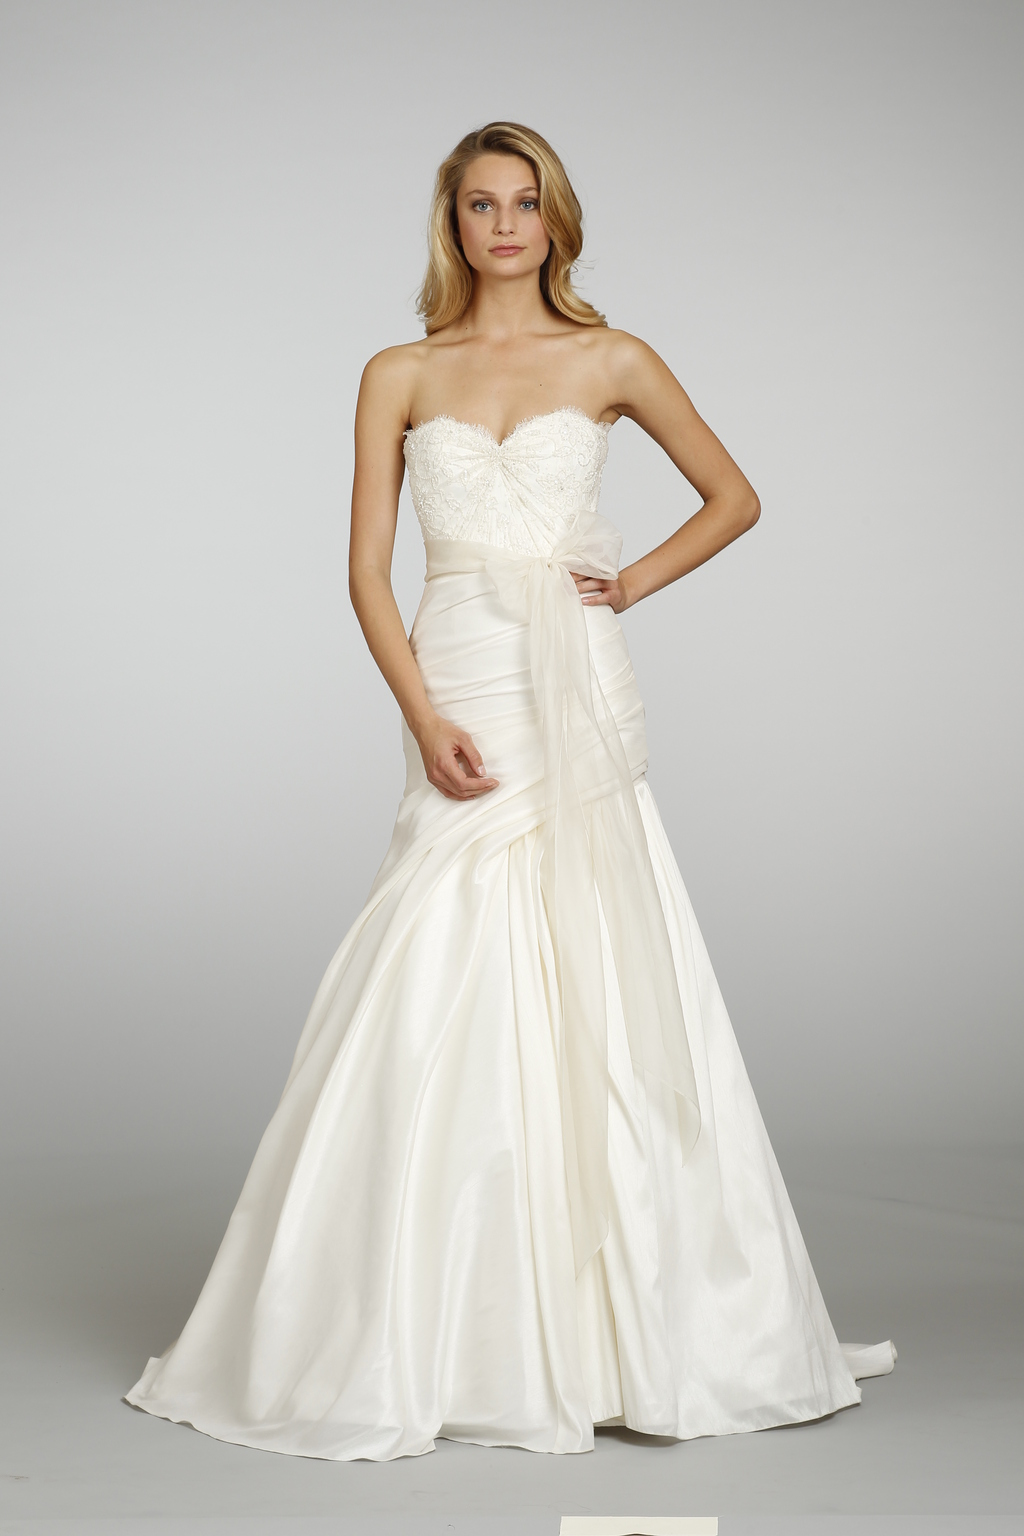 Spring-2013-wedding-dress-hayley-paige-bridal-gowns-6311.full